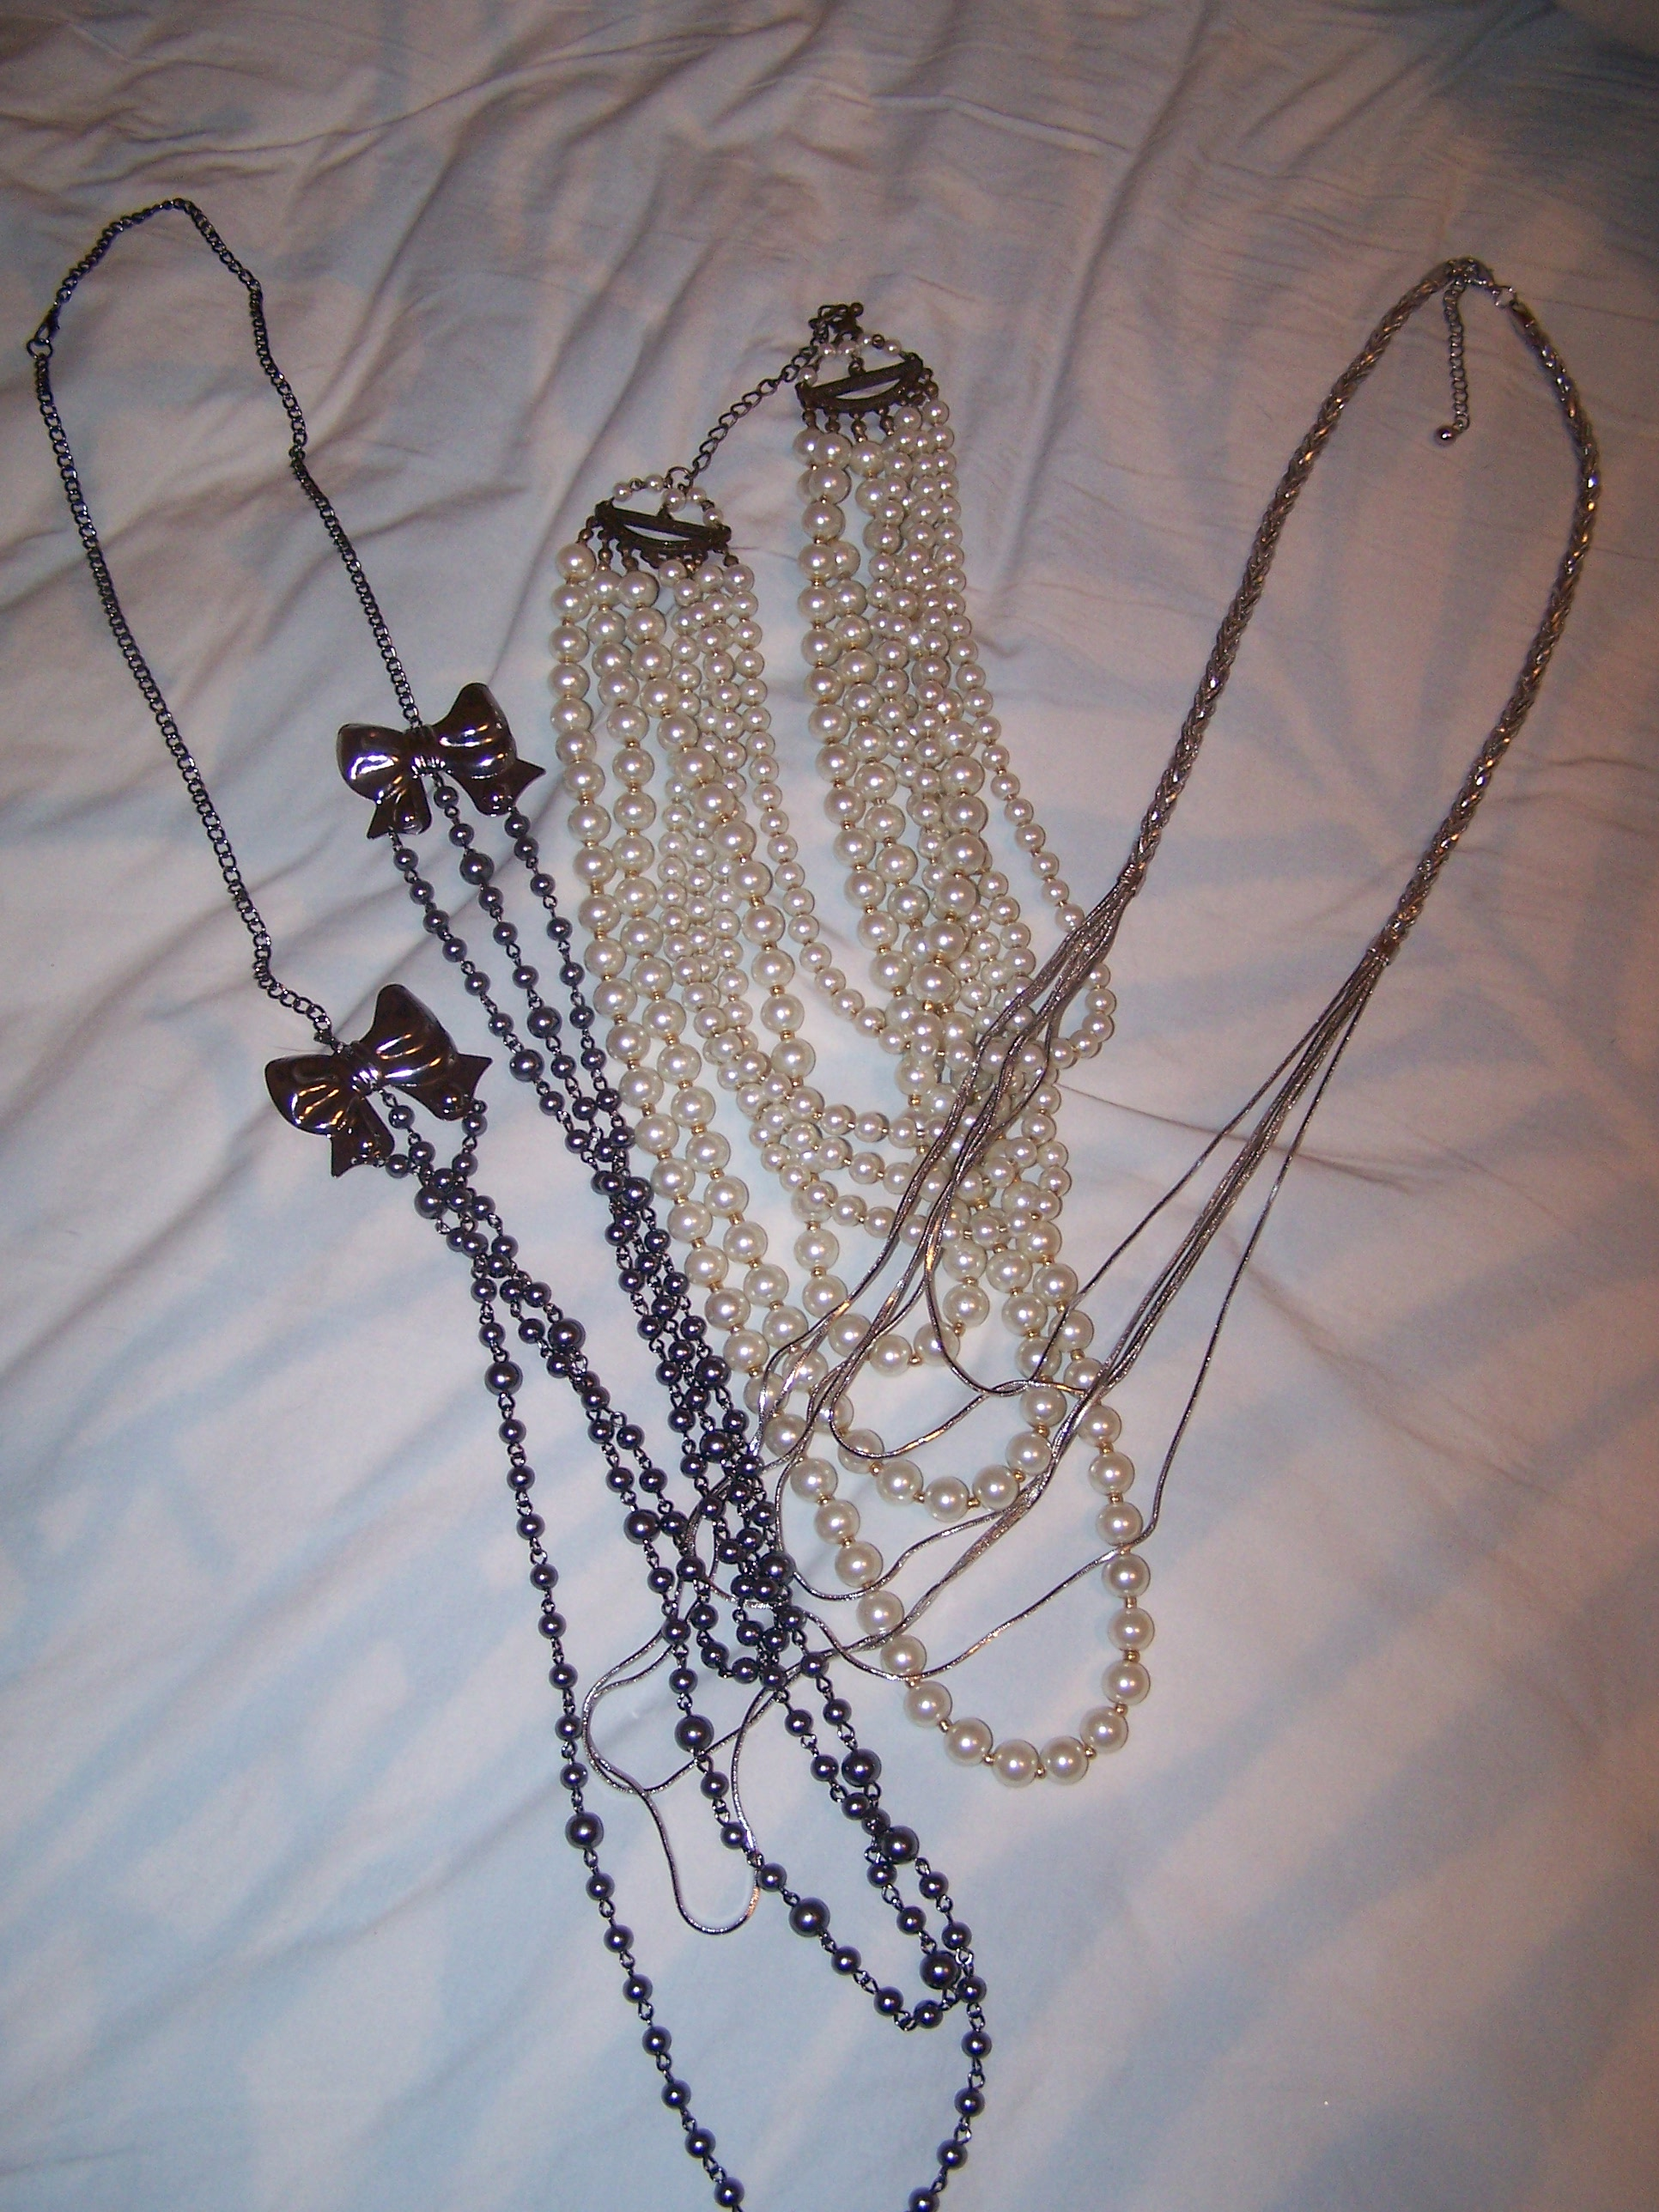 Funky jewelry to go with...